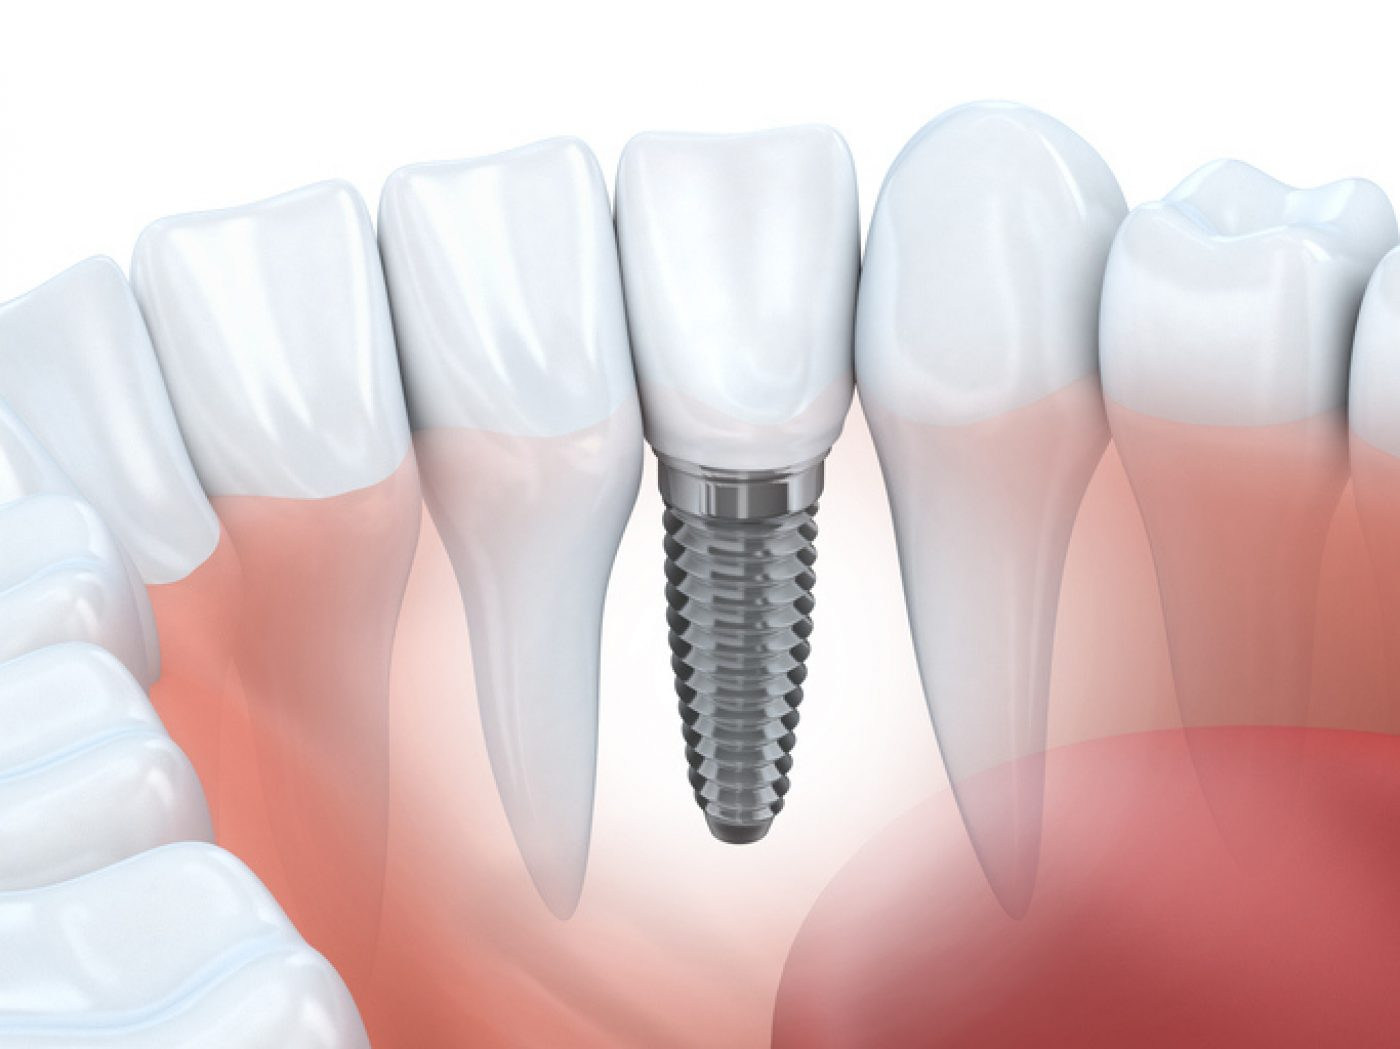 Single Implant Pittville Lawn Dental Implant Clinic